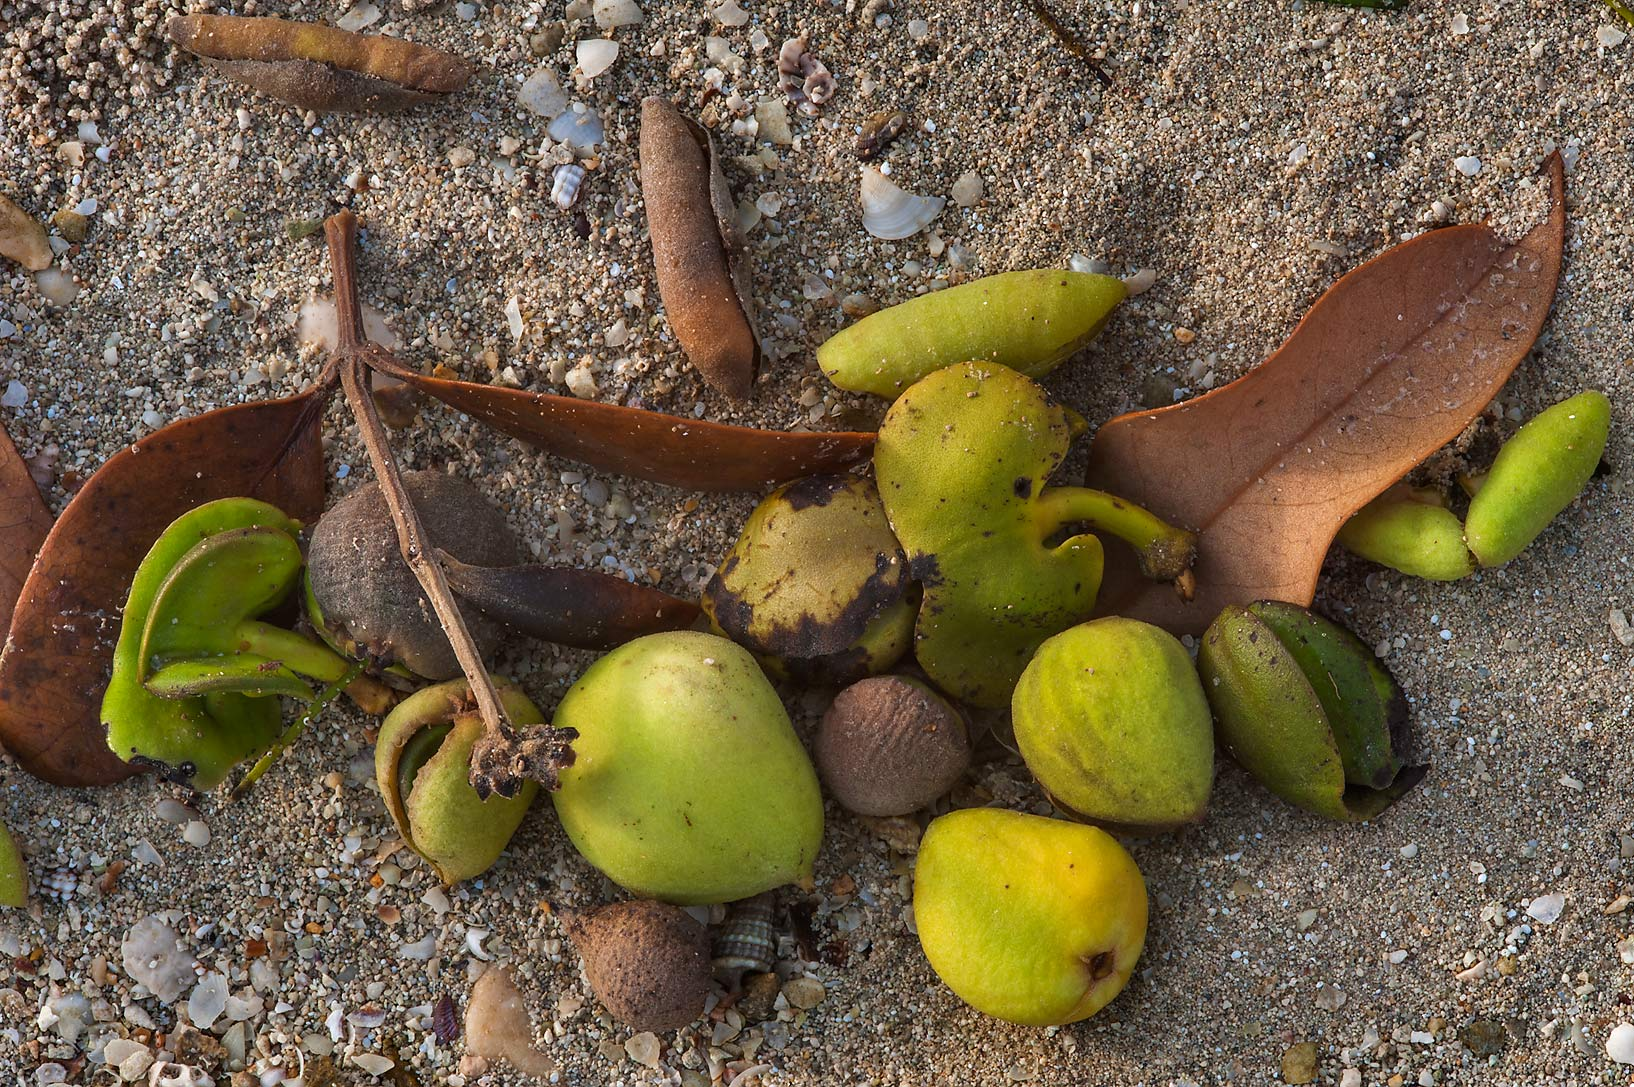 Fruits and dry twigs of mangrove (Avicennia...Jazirat Bin Ghanim). Al Khor, Qatar